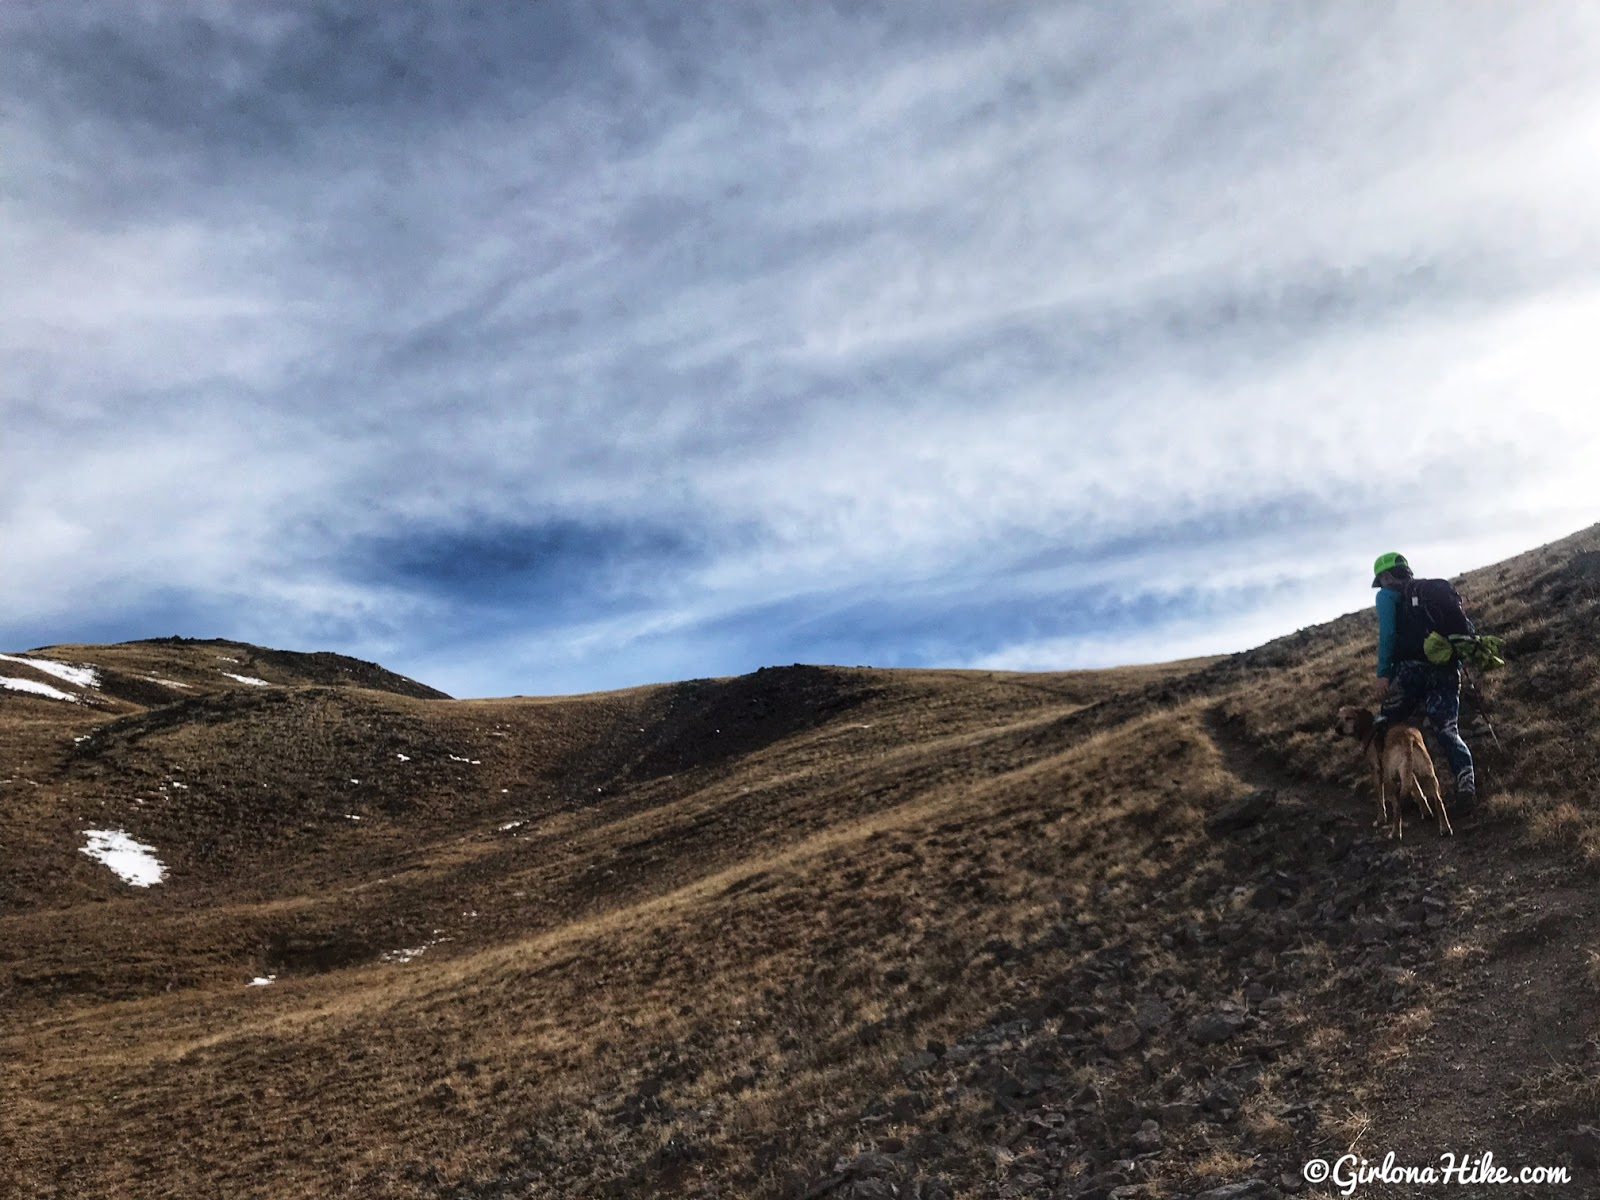 Hiking to Delano Peak, Tushar Mountains, Beaver & Piute County High Point, Hiking in Utah with Dogs